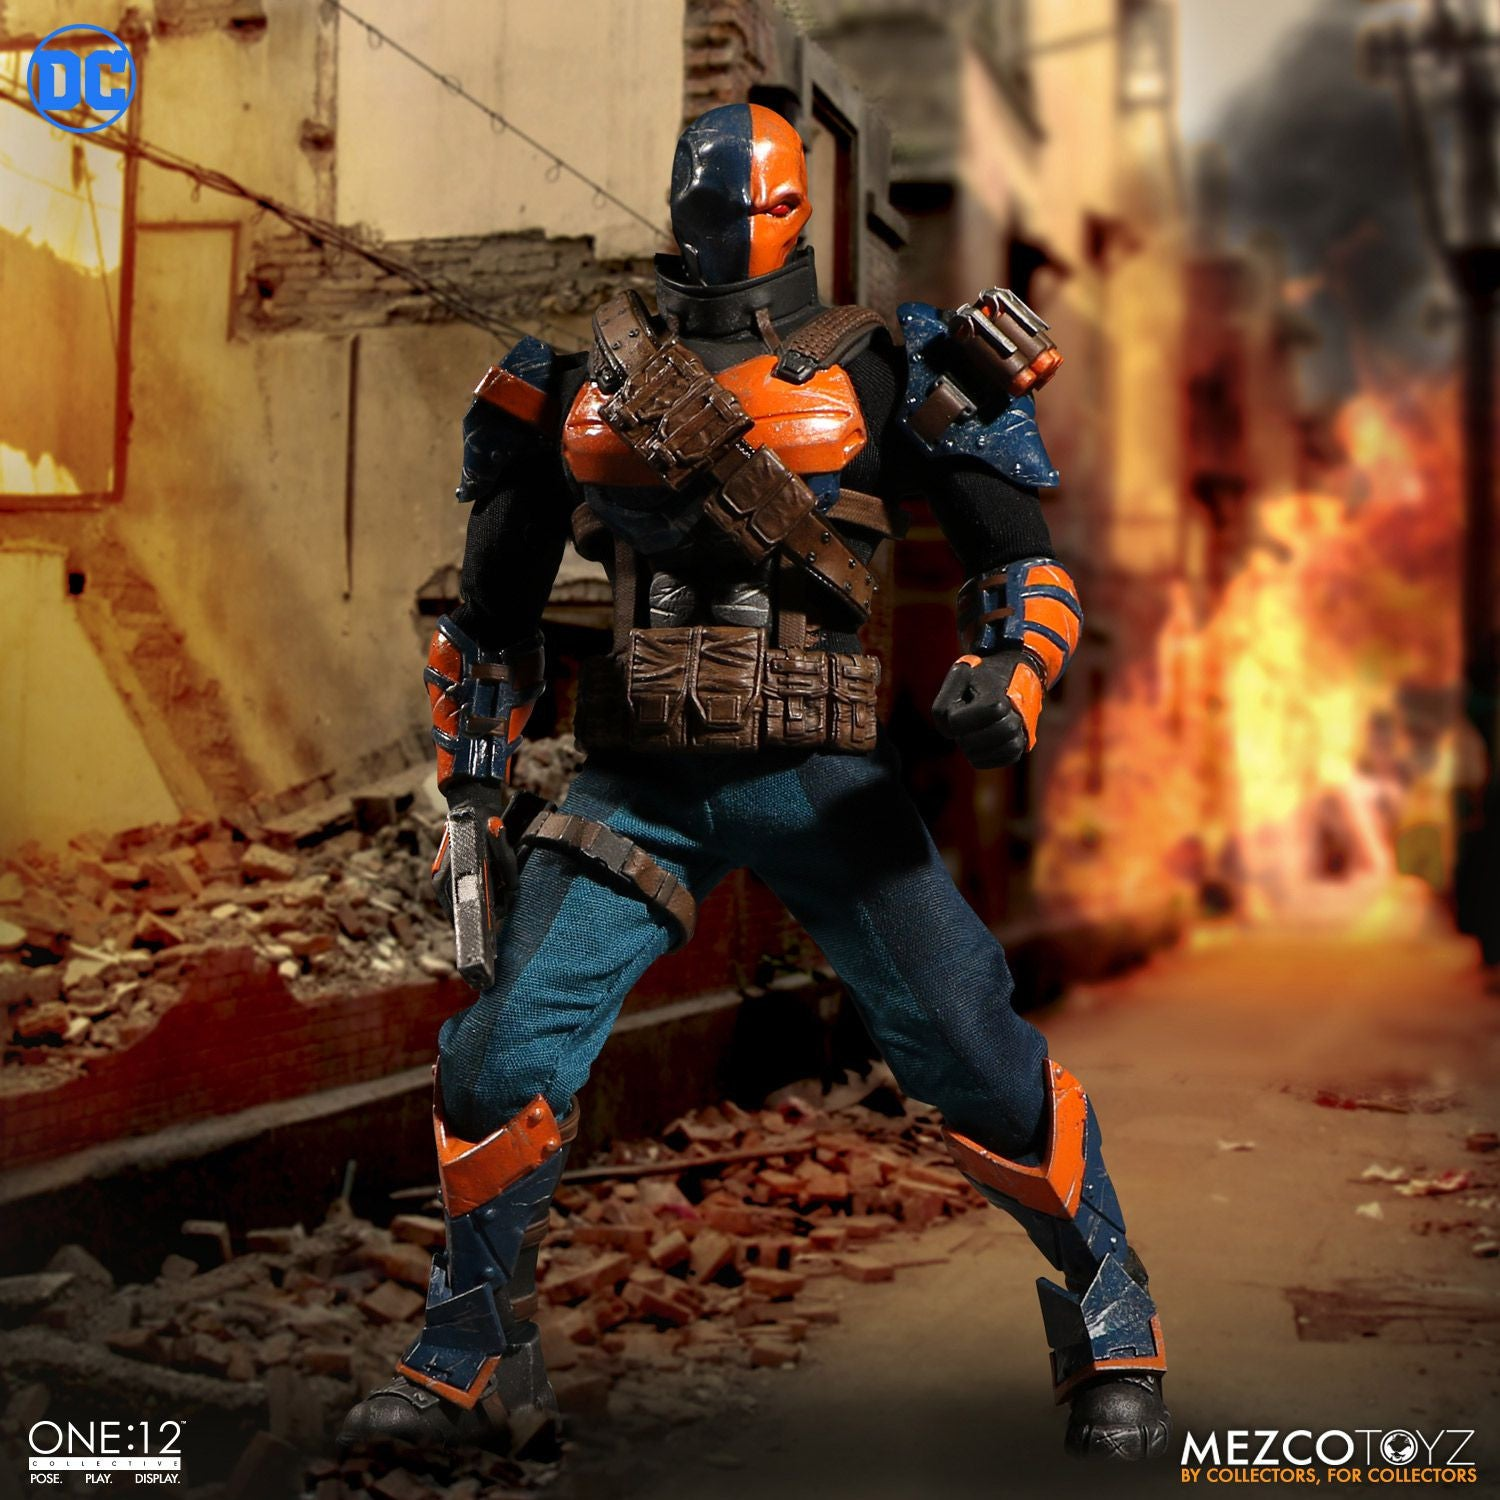 Mezco - One:12 Collective - Deathstroke - Marvelous Toys - 1